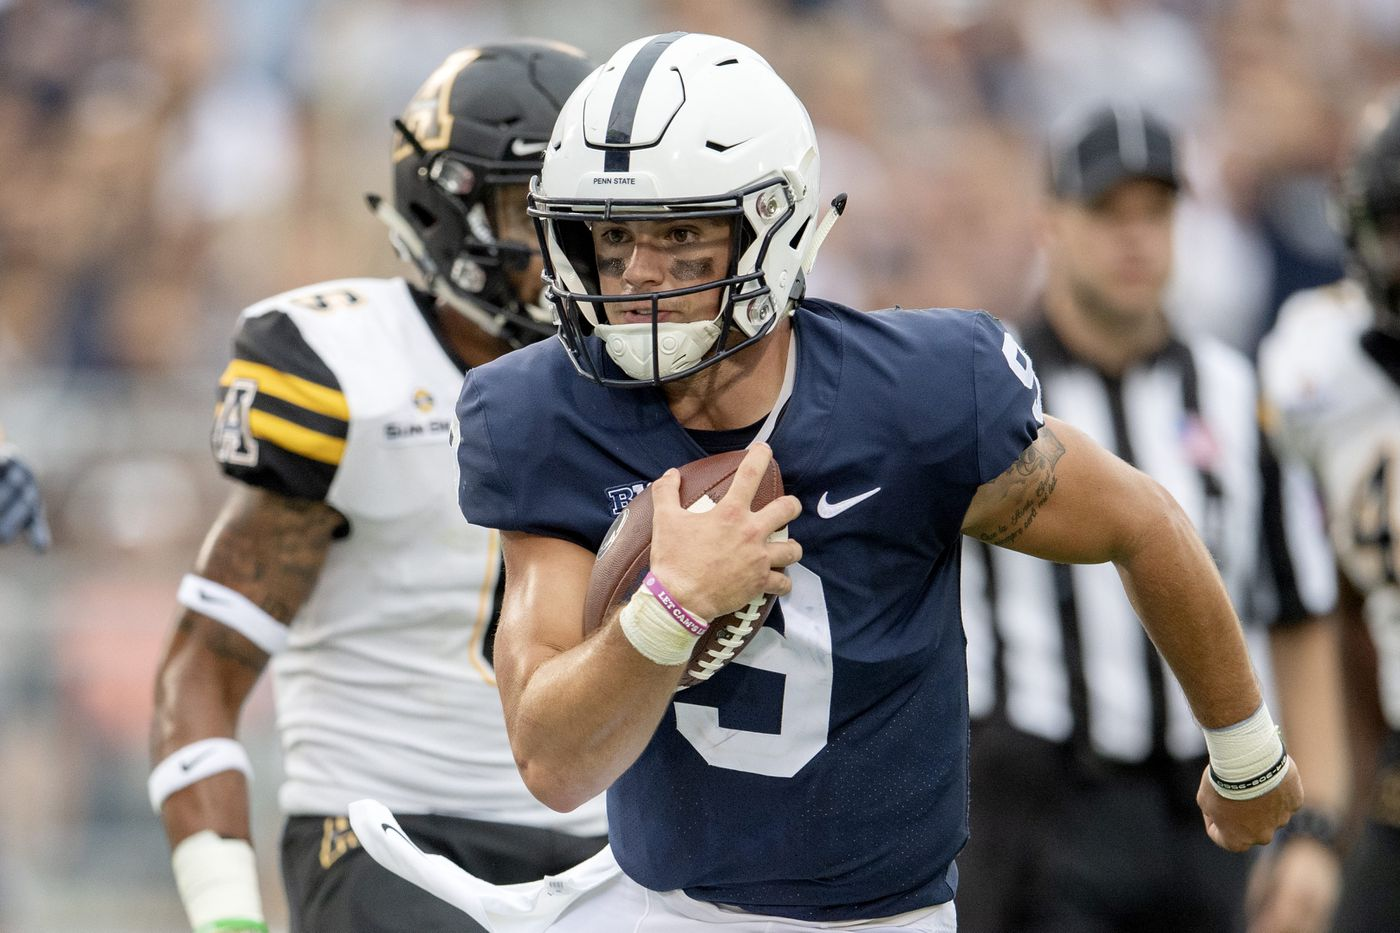 Penn State expecting another hostile atmosphere Saturday night at Pittsburgh